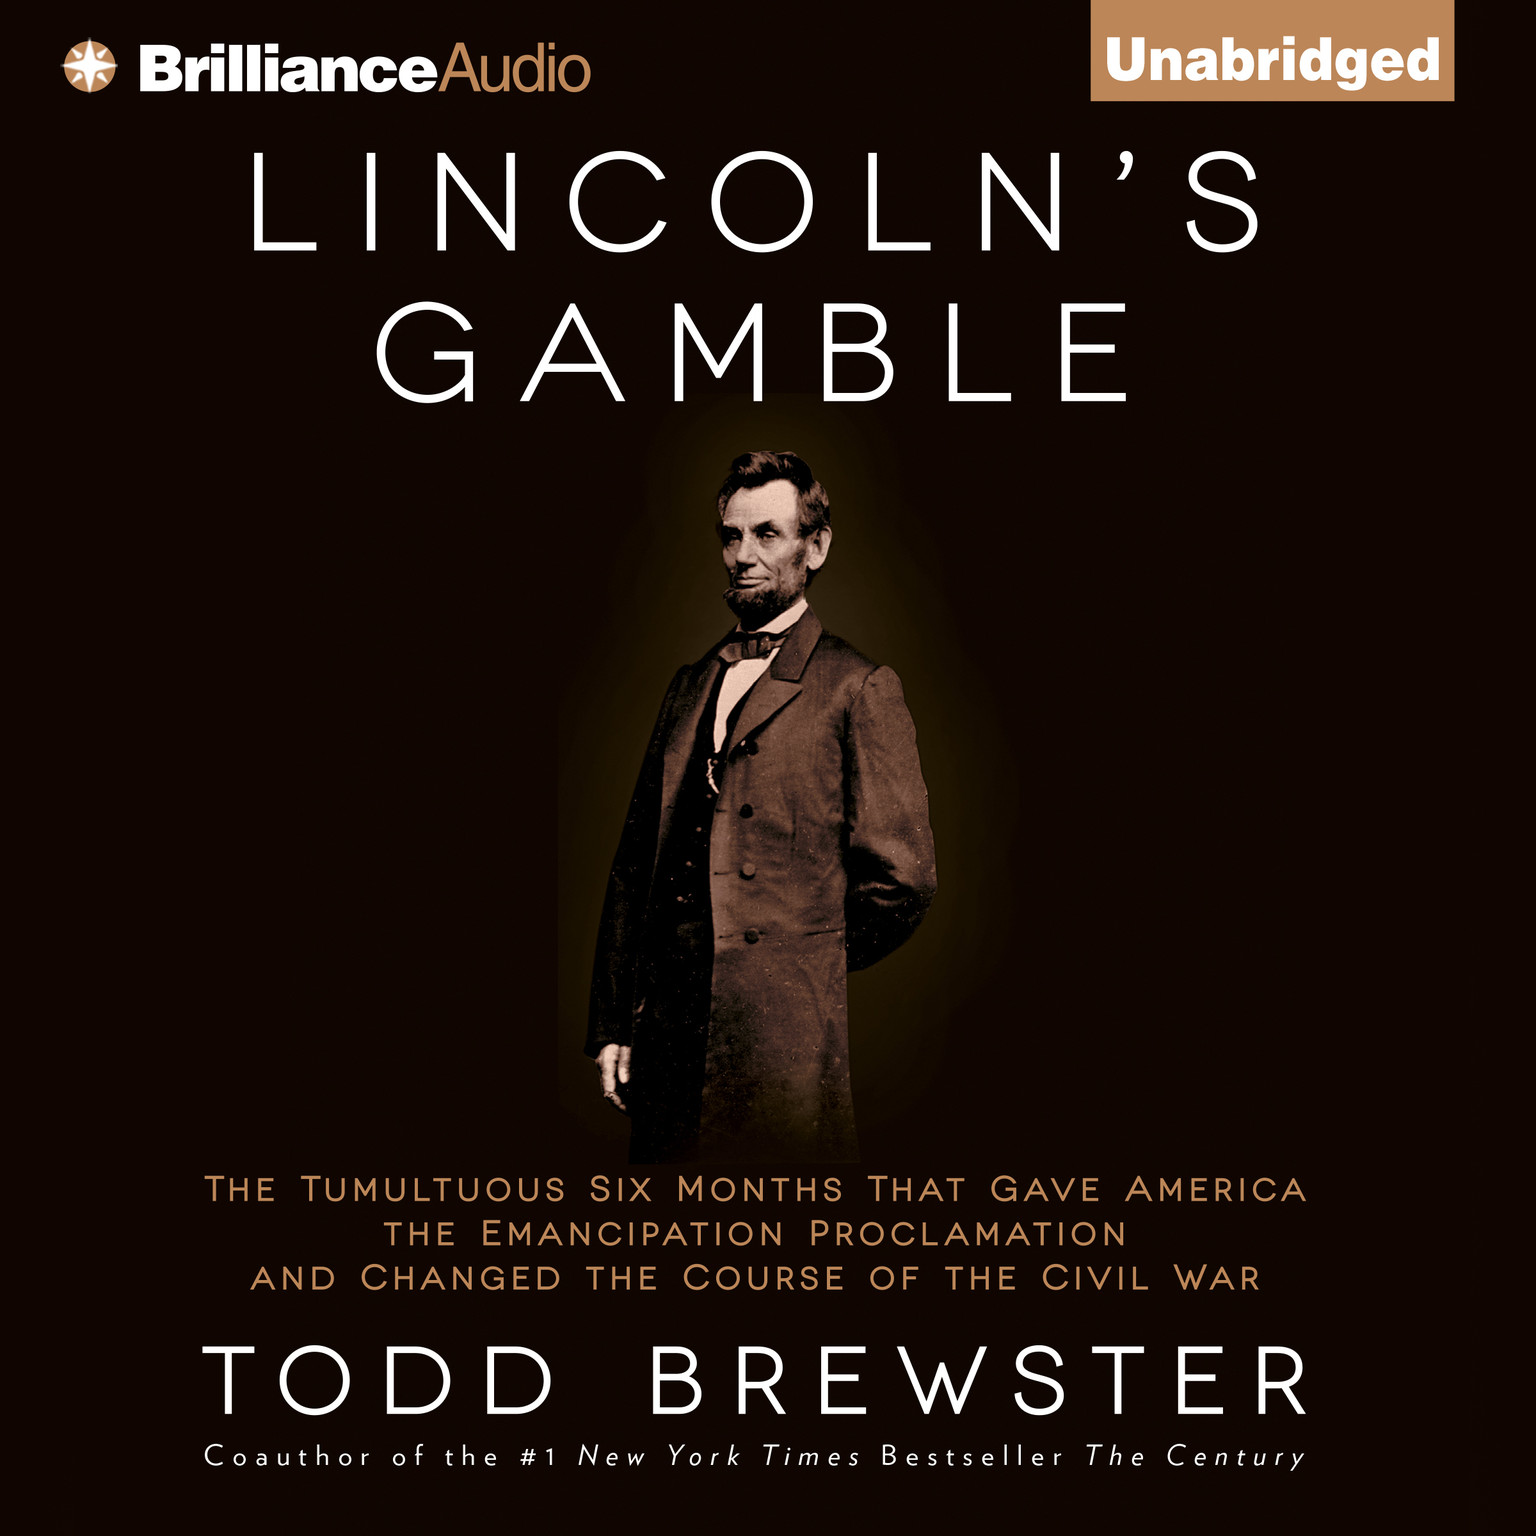 Printable Lincoln's Gamble: The Tumultuous Six Months that Gave America the Emancipation Proclamation and Changed the Course of the Civil War Audiobook Cover Art